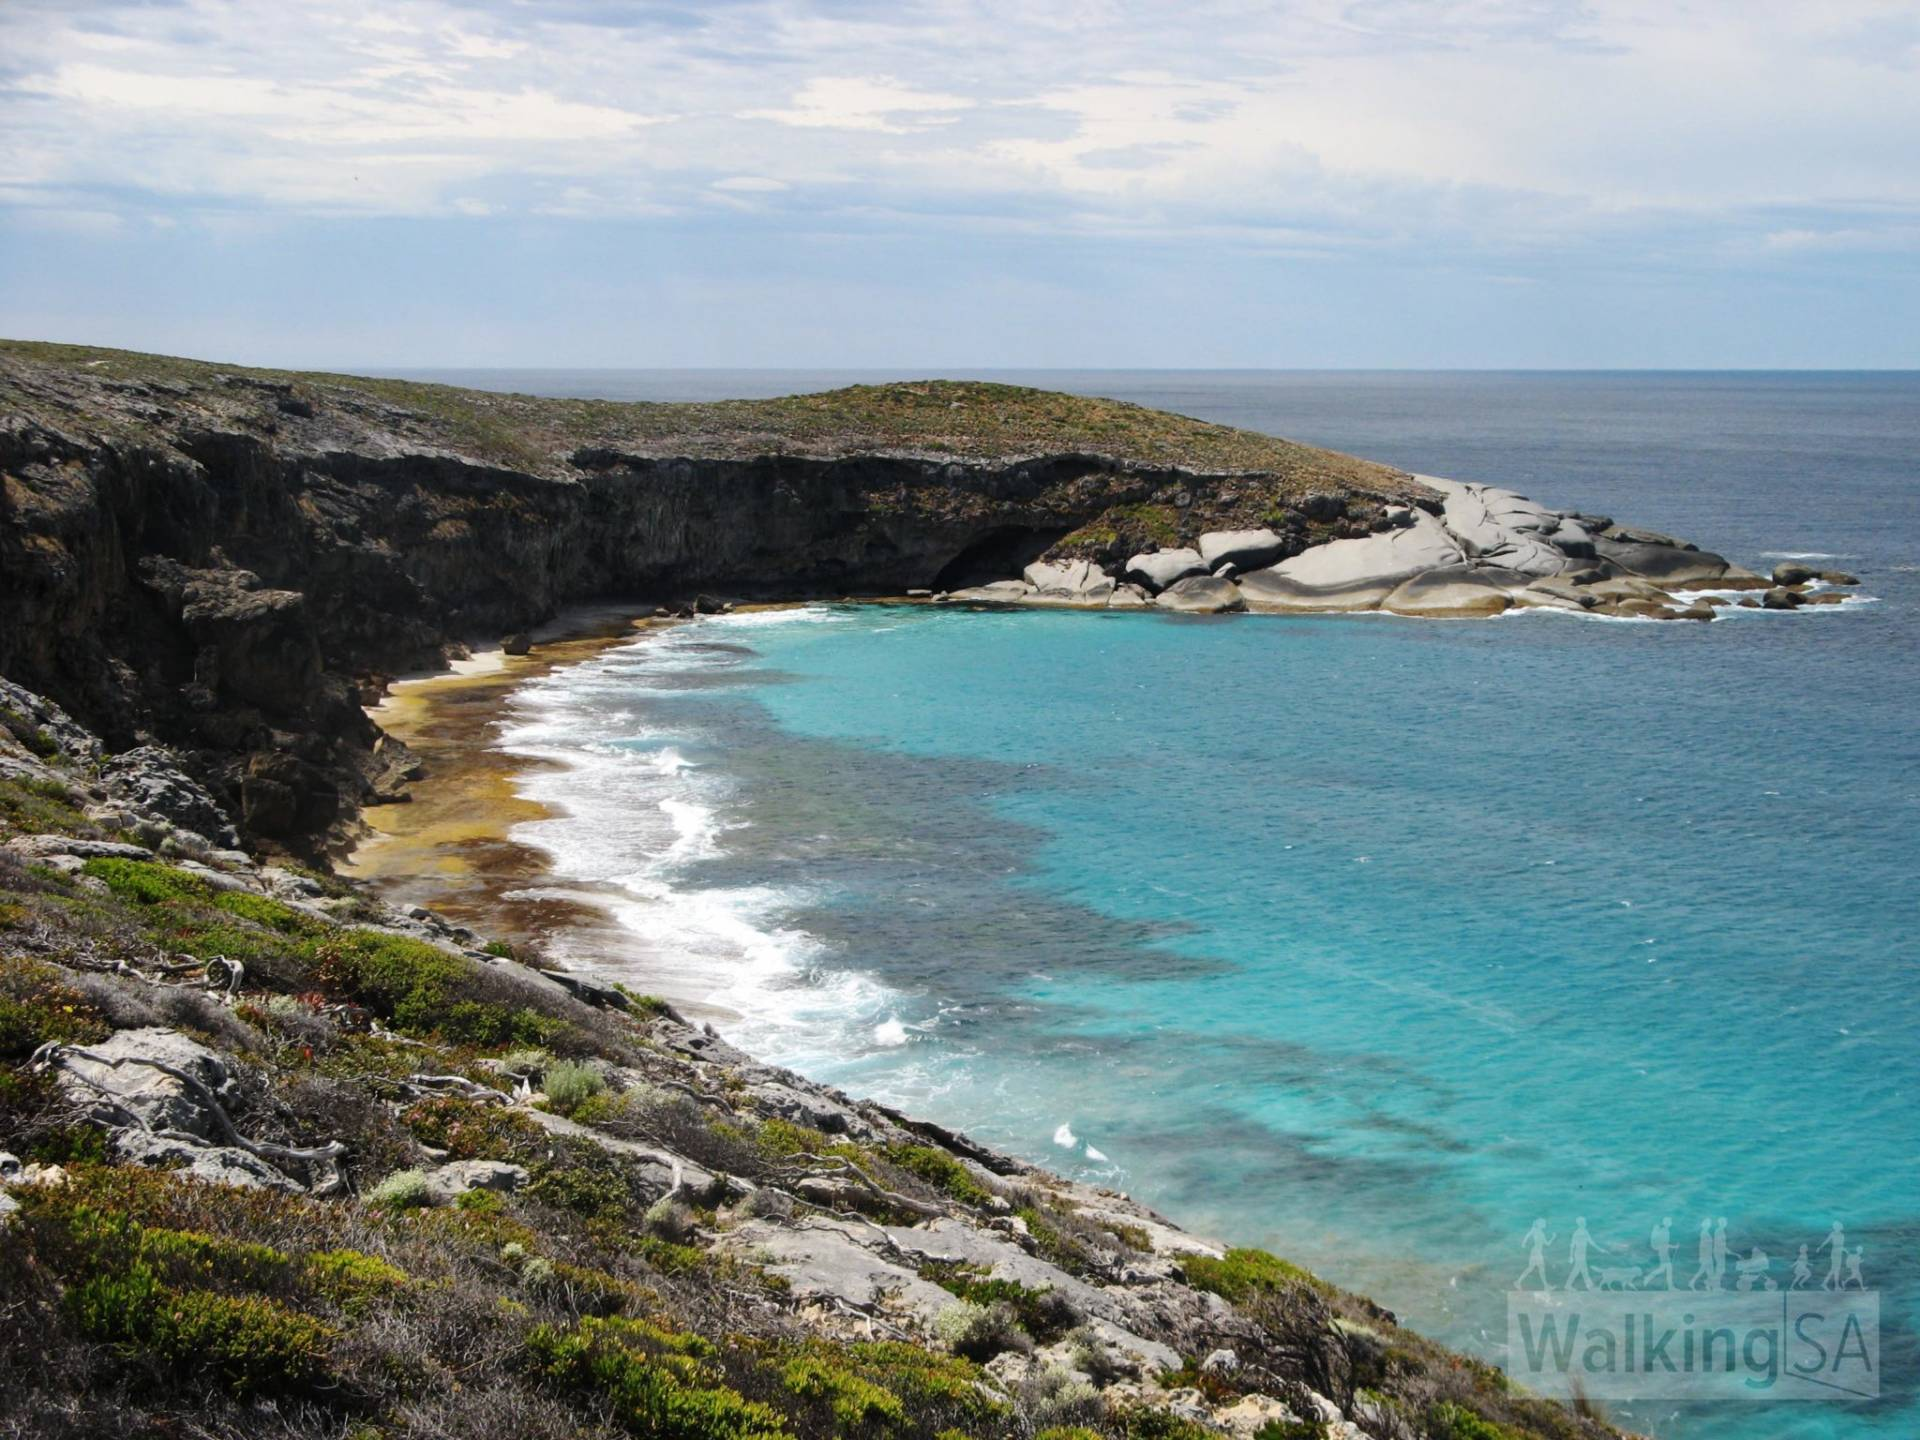 Kangaroo Island Wilderness Trail: Day 4: Grassdale Section